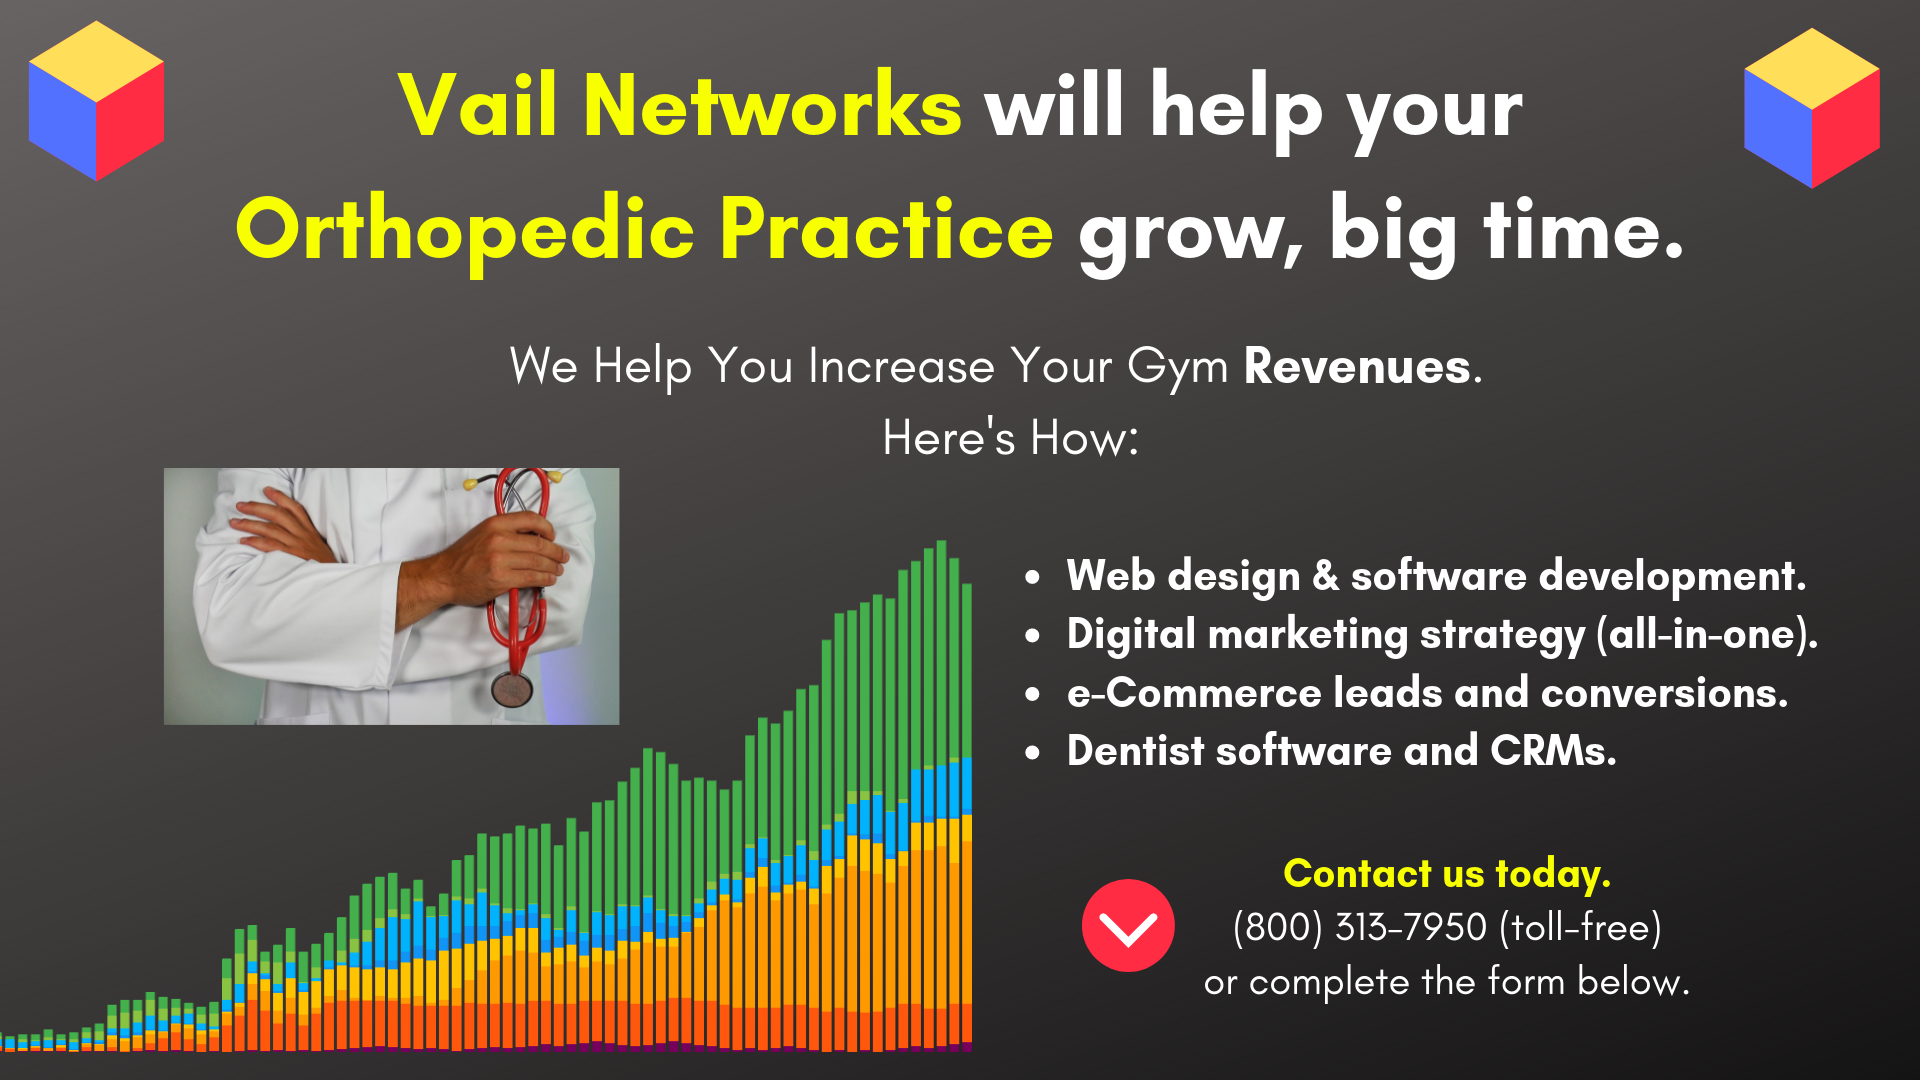 Orthopedics and Orthopedist marketing, SEO and website development:  by Vailnetworks.com